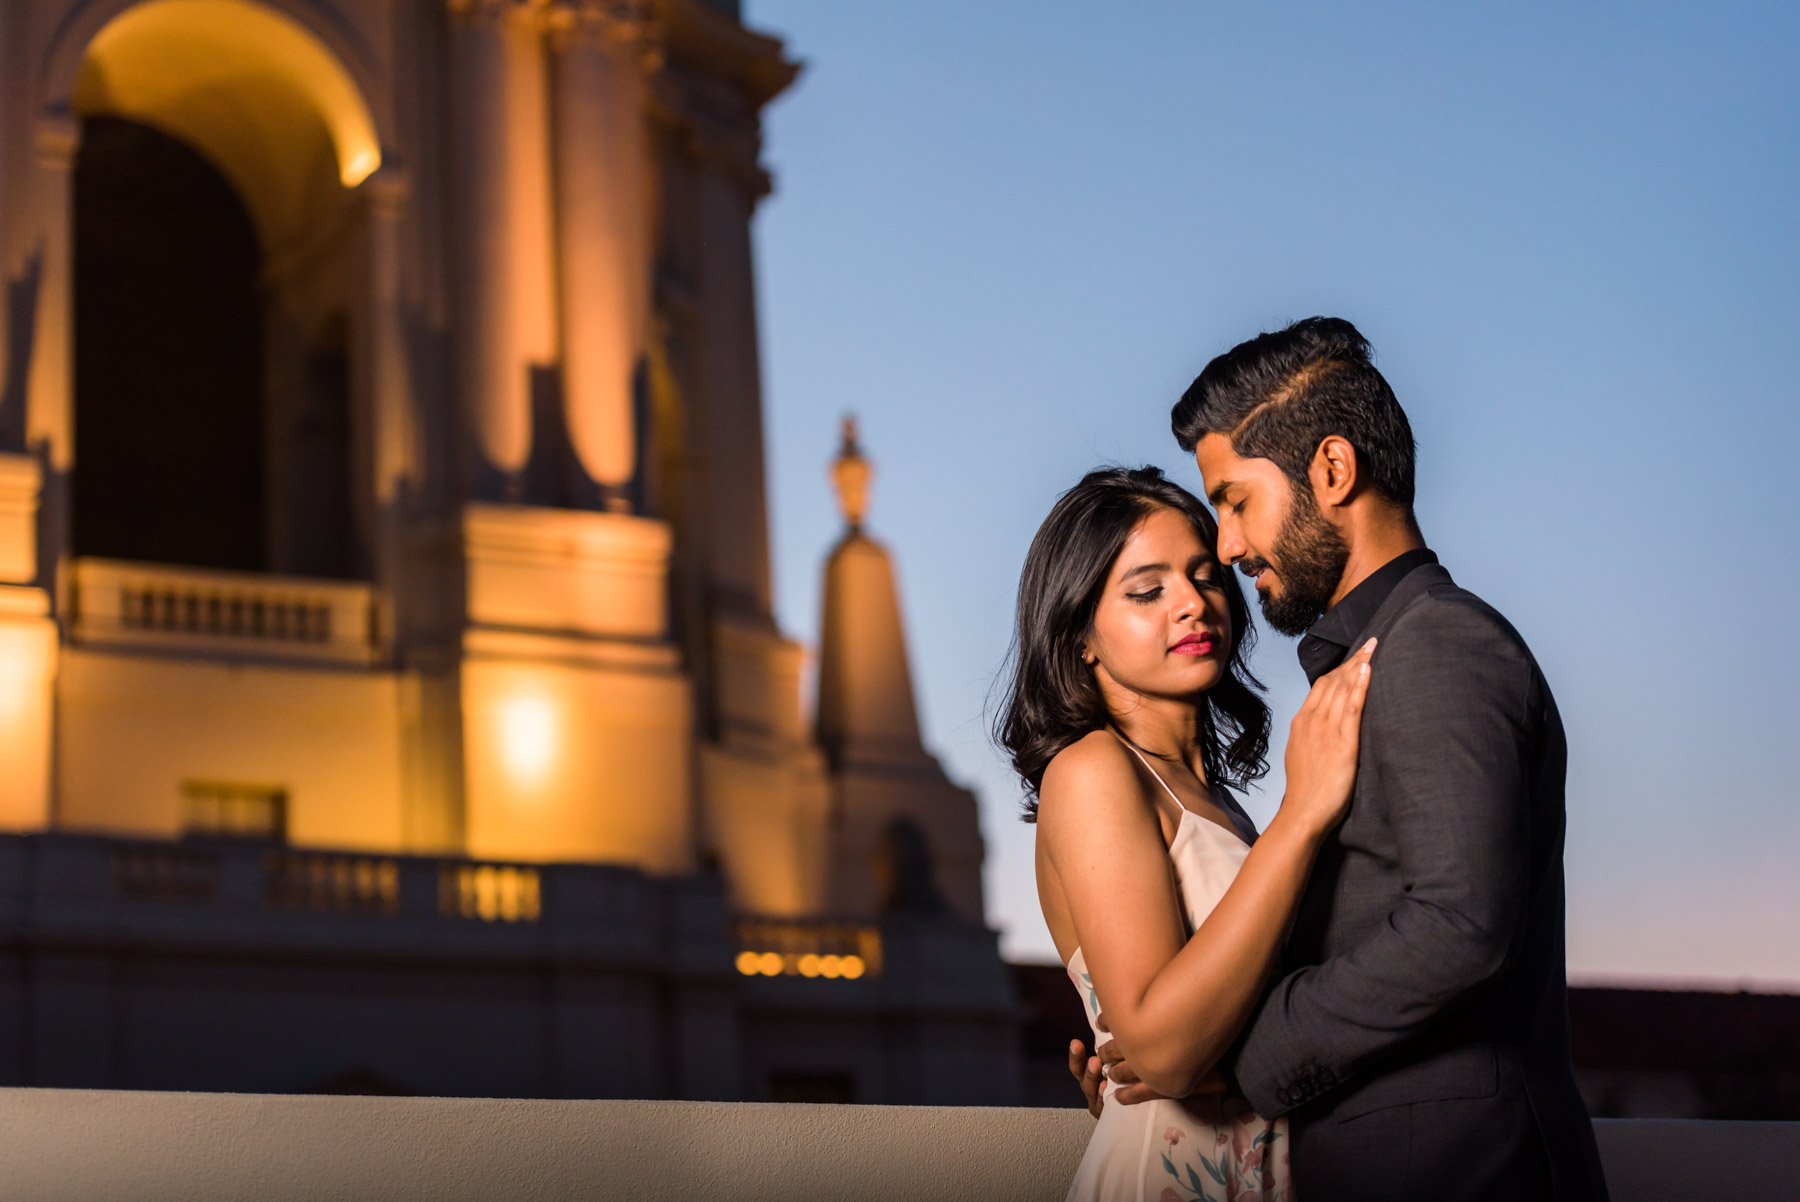 Pasadena-City-Hall-Engagement-Shoot-Isaac-and-Apoorva-2637.JPG